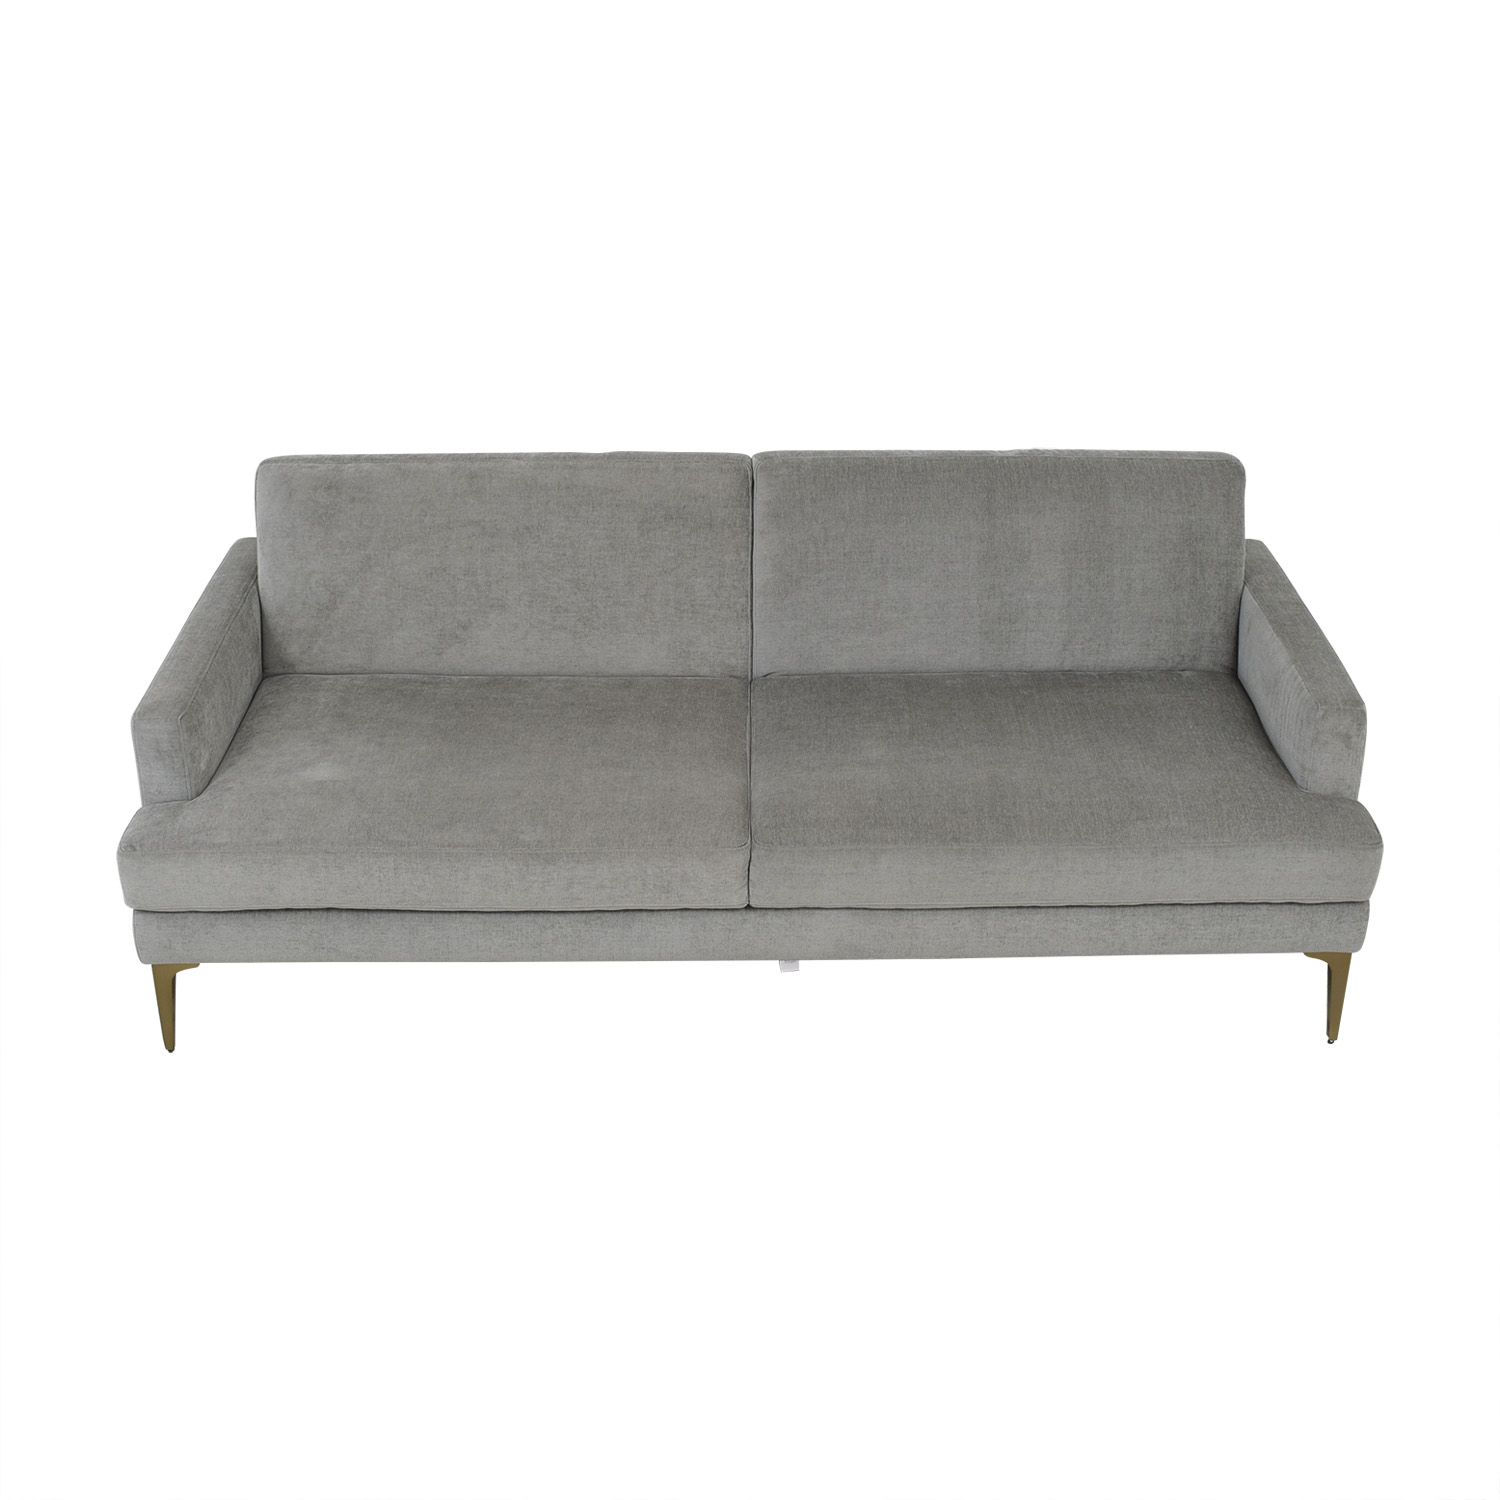 West Elm West Elm Andes Full Futon price